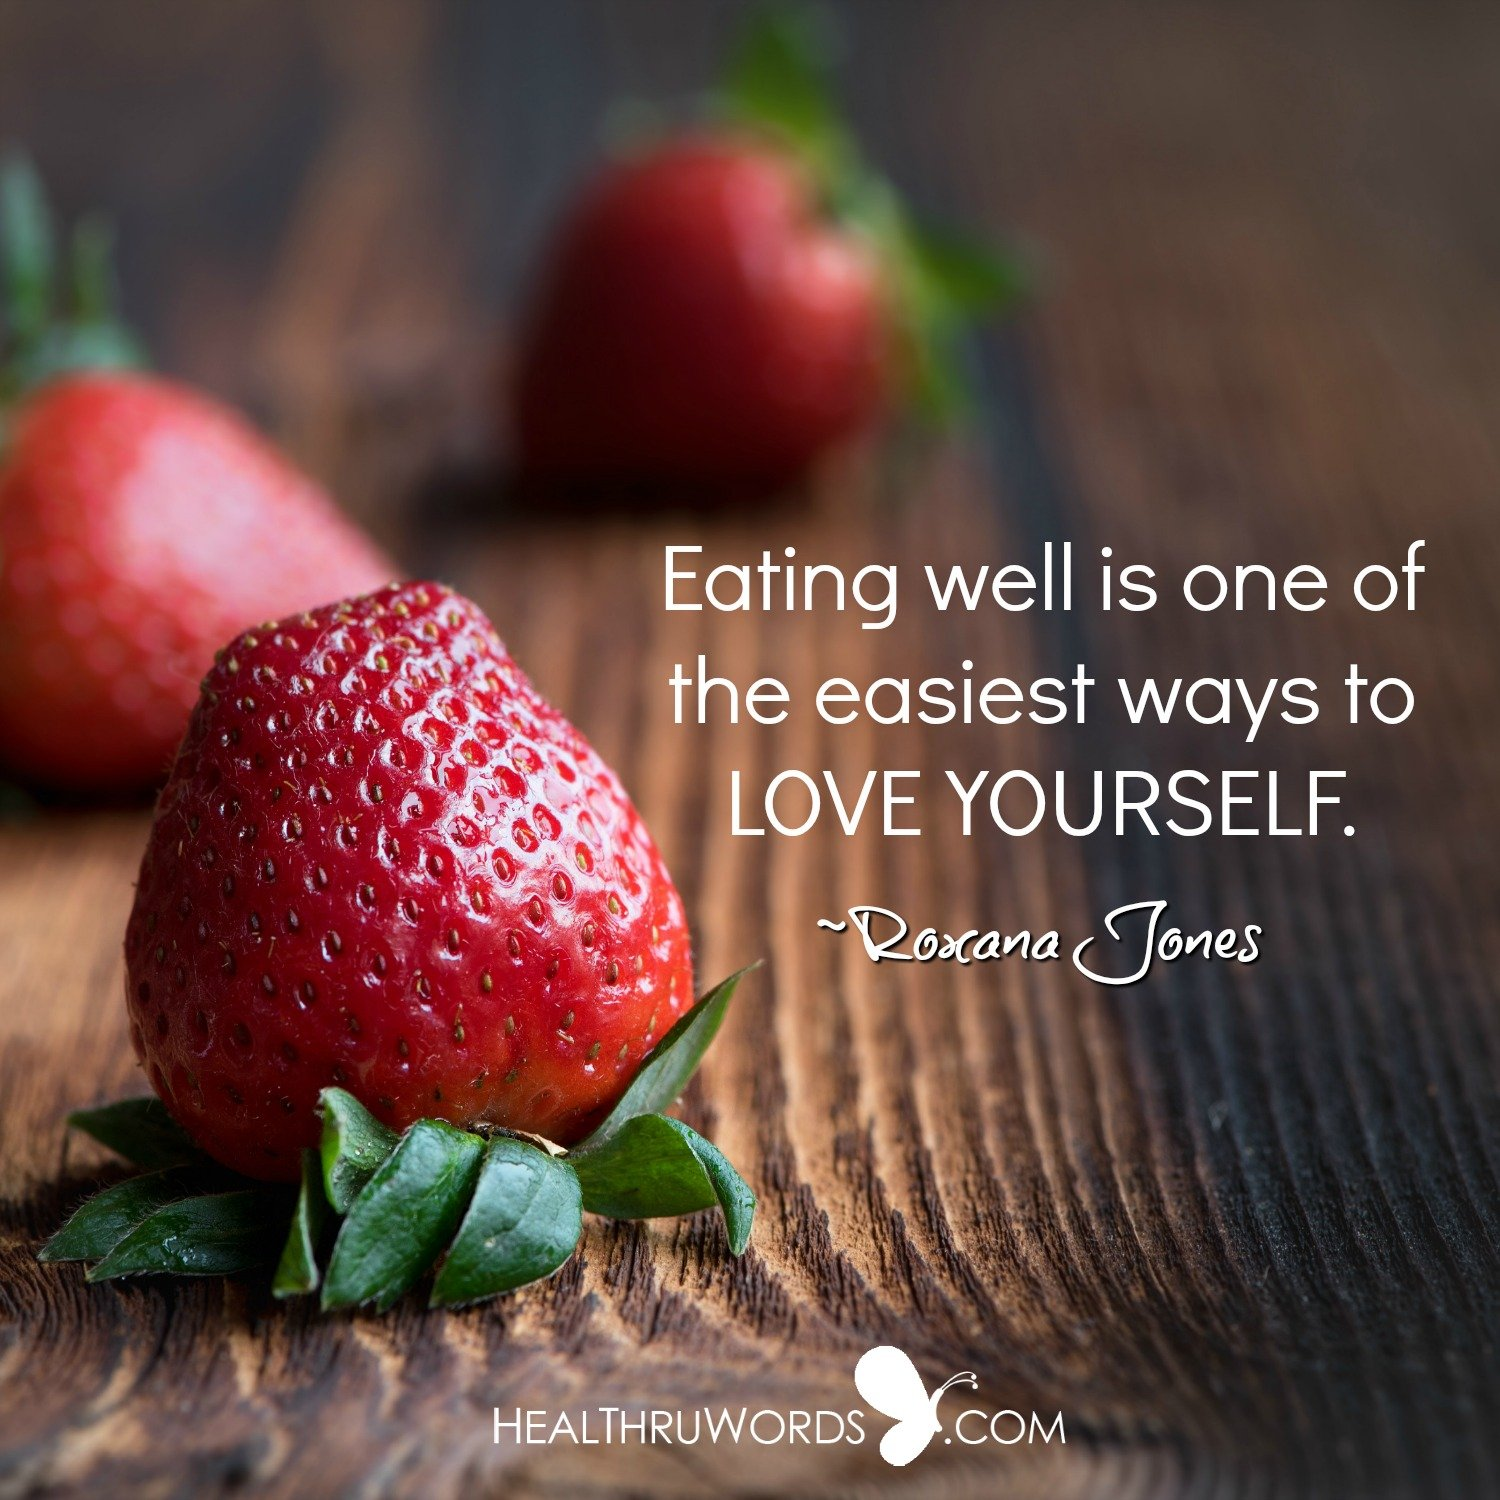 Inspirational Image: Nutrition and Self-love